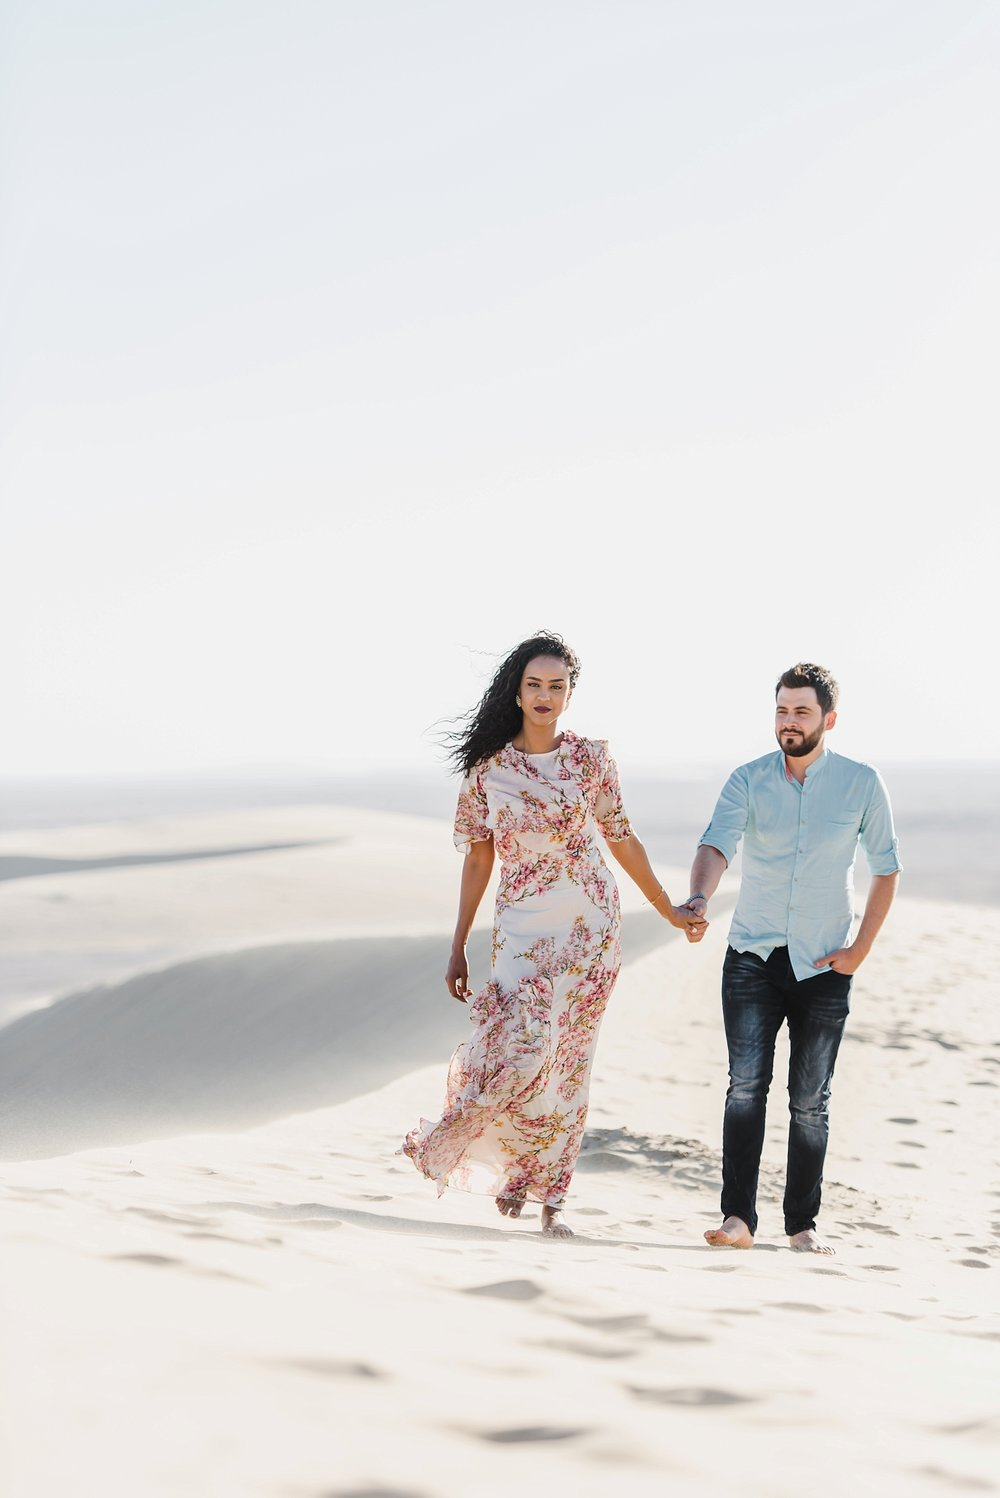 Singing Sand Dunes Desert Love Shoot | Ali and Batoul Photography_0010.jpg